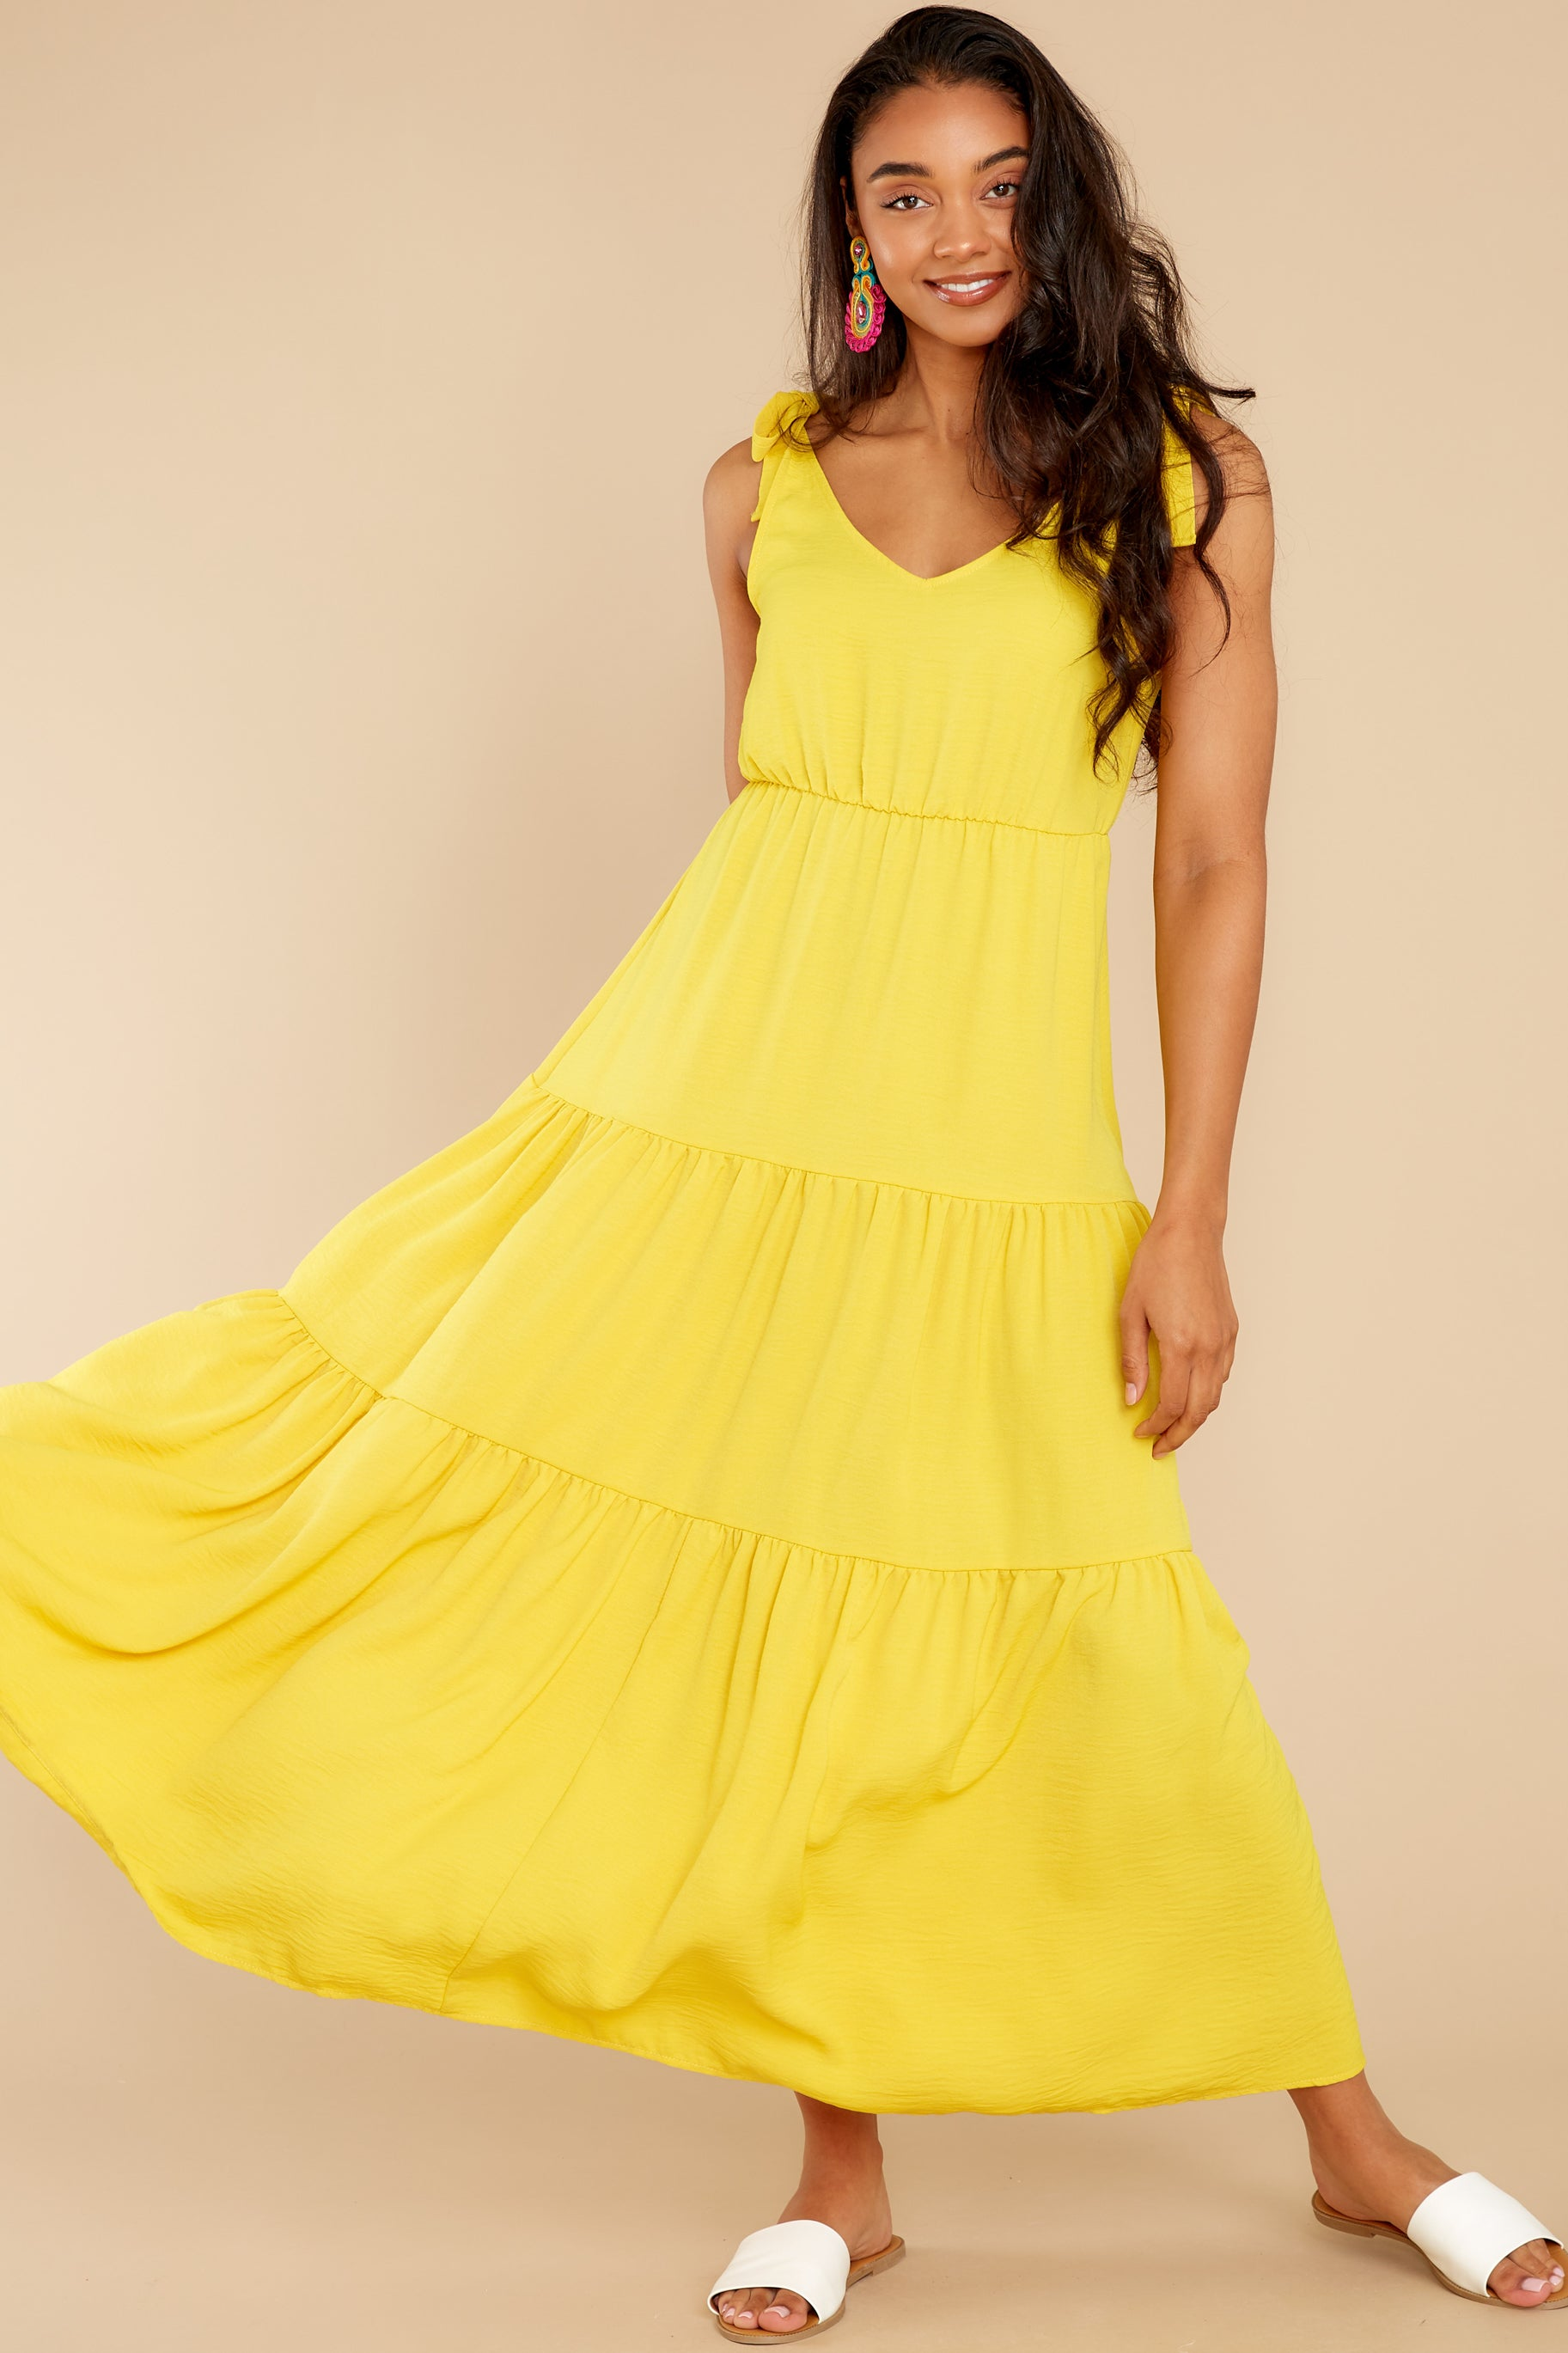 5 Right Kind Of Attention Yellow Maxi Dress at reddress.com